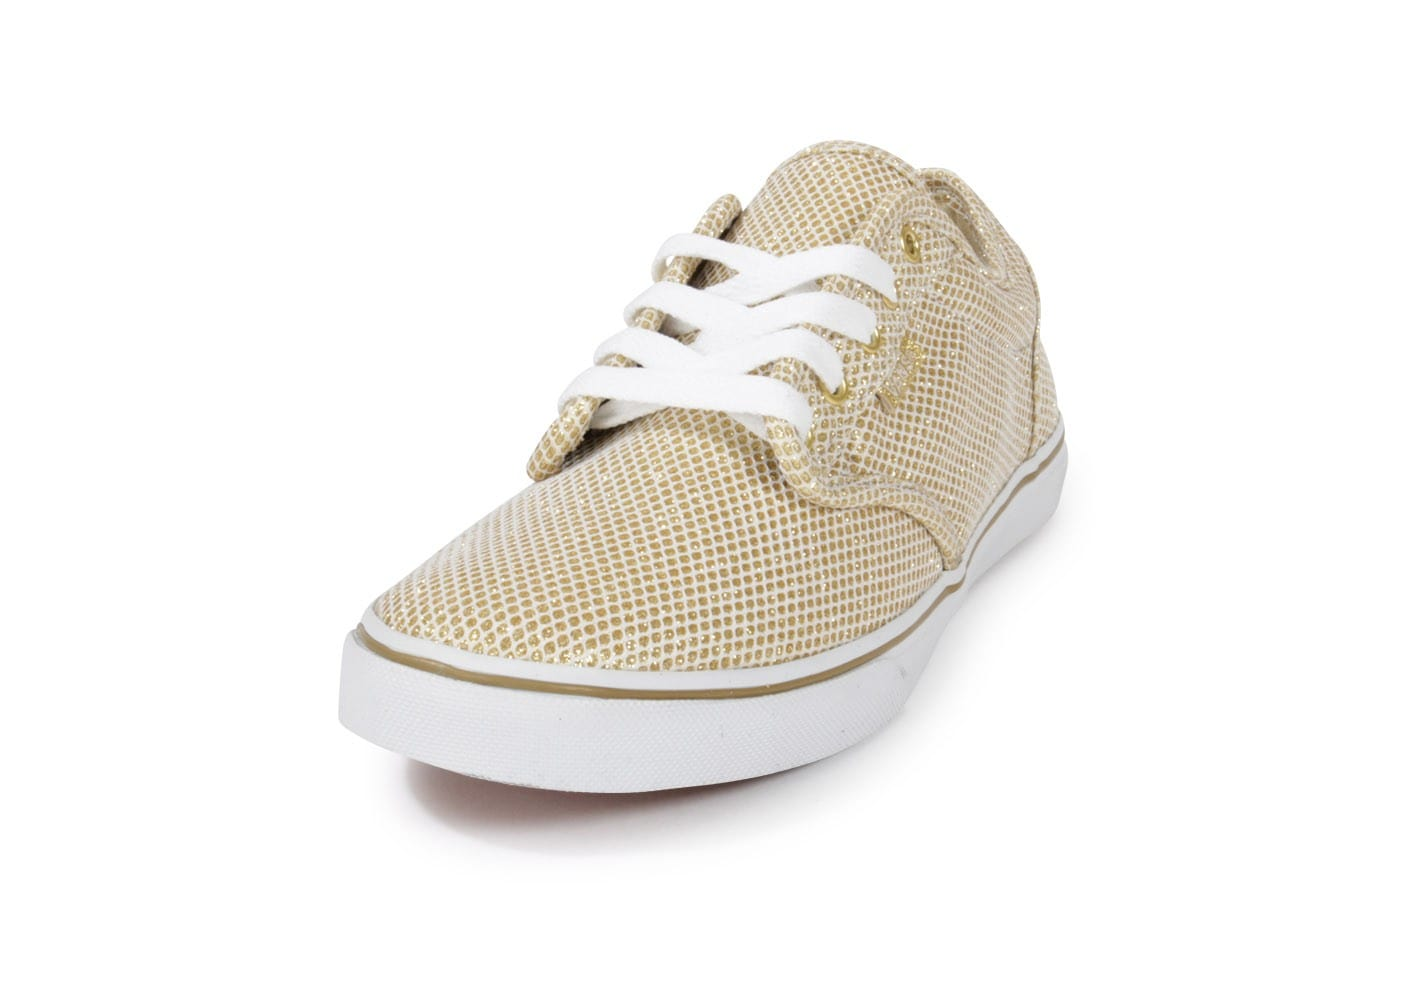 Vans Atwood Paillette Or Chaussures Chaussures Chausport